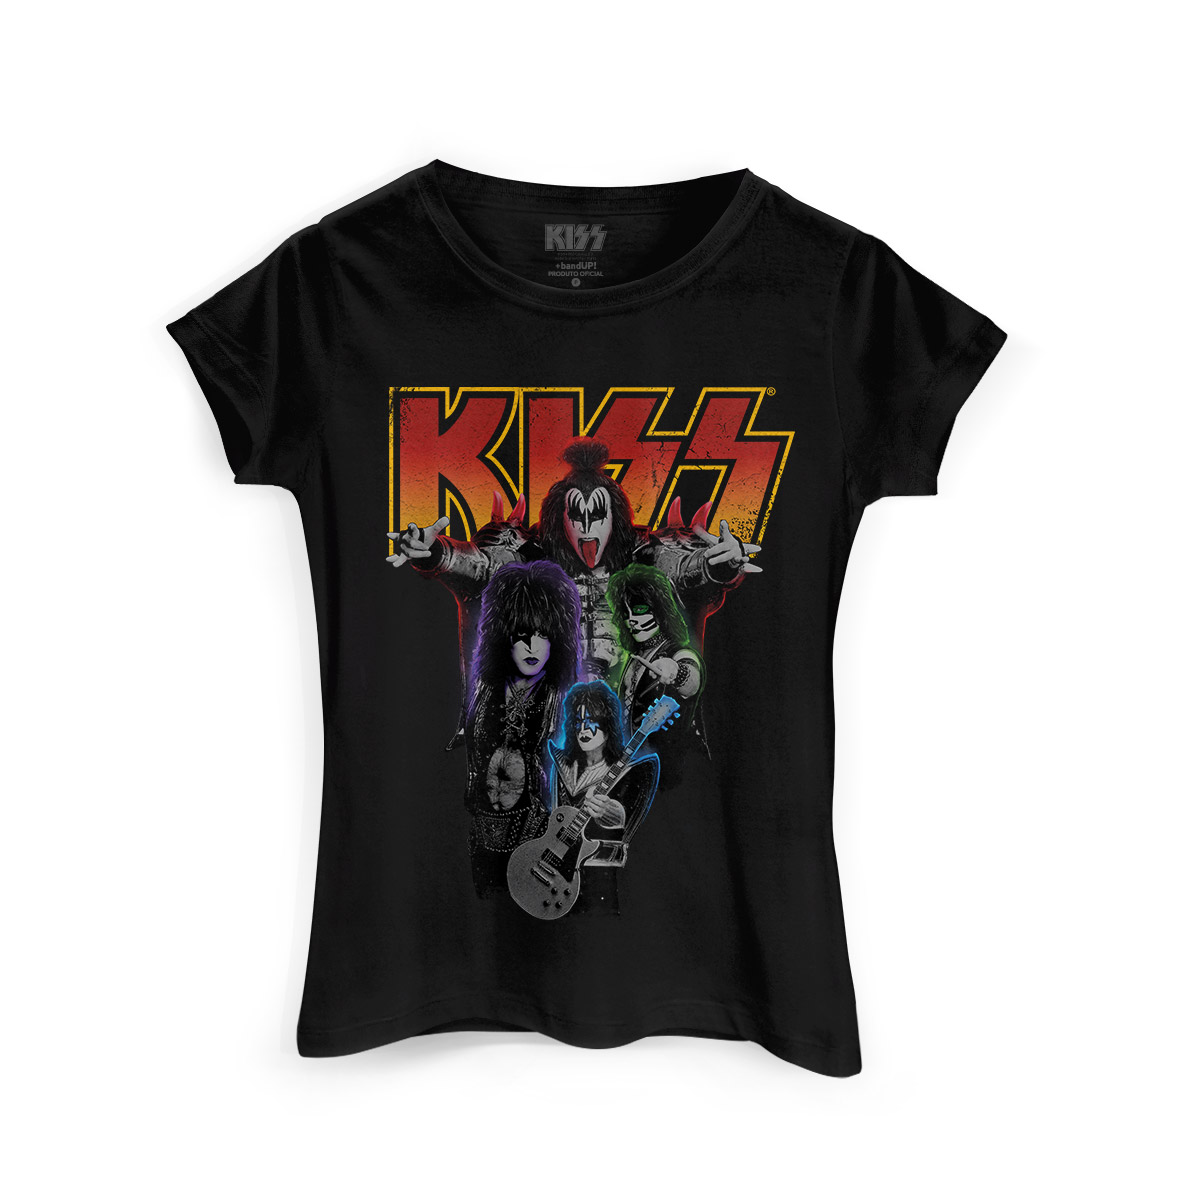 Camiseta Feminina Kiss Kissology